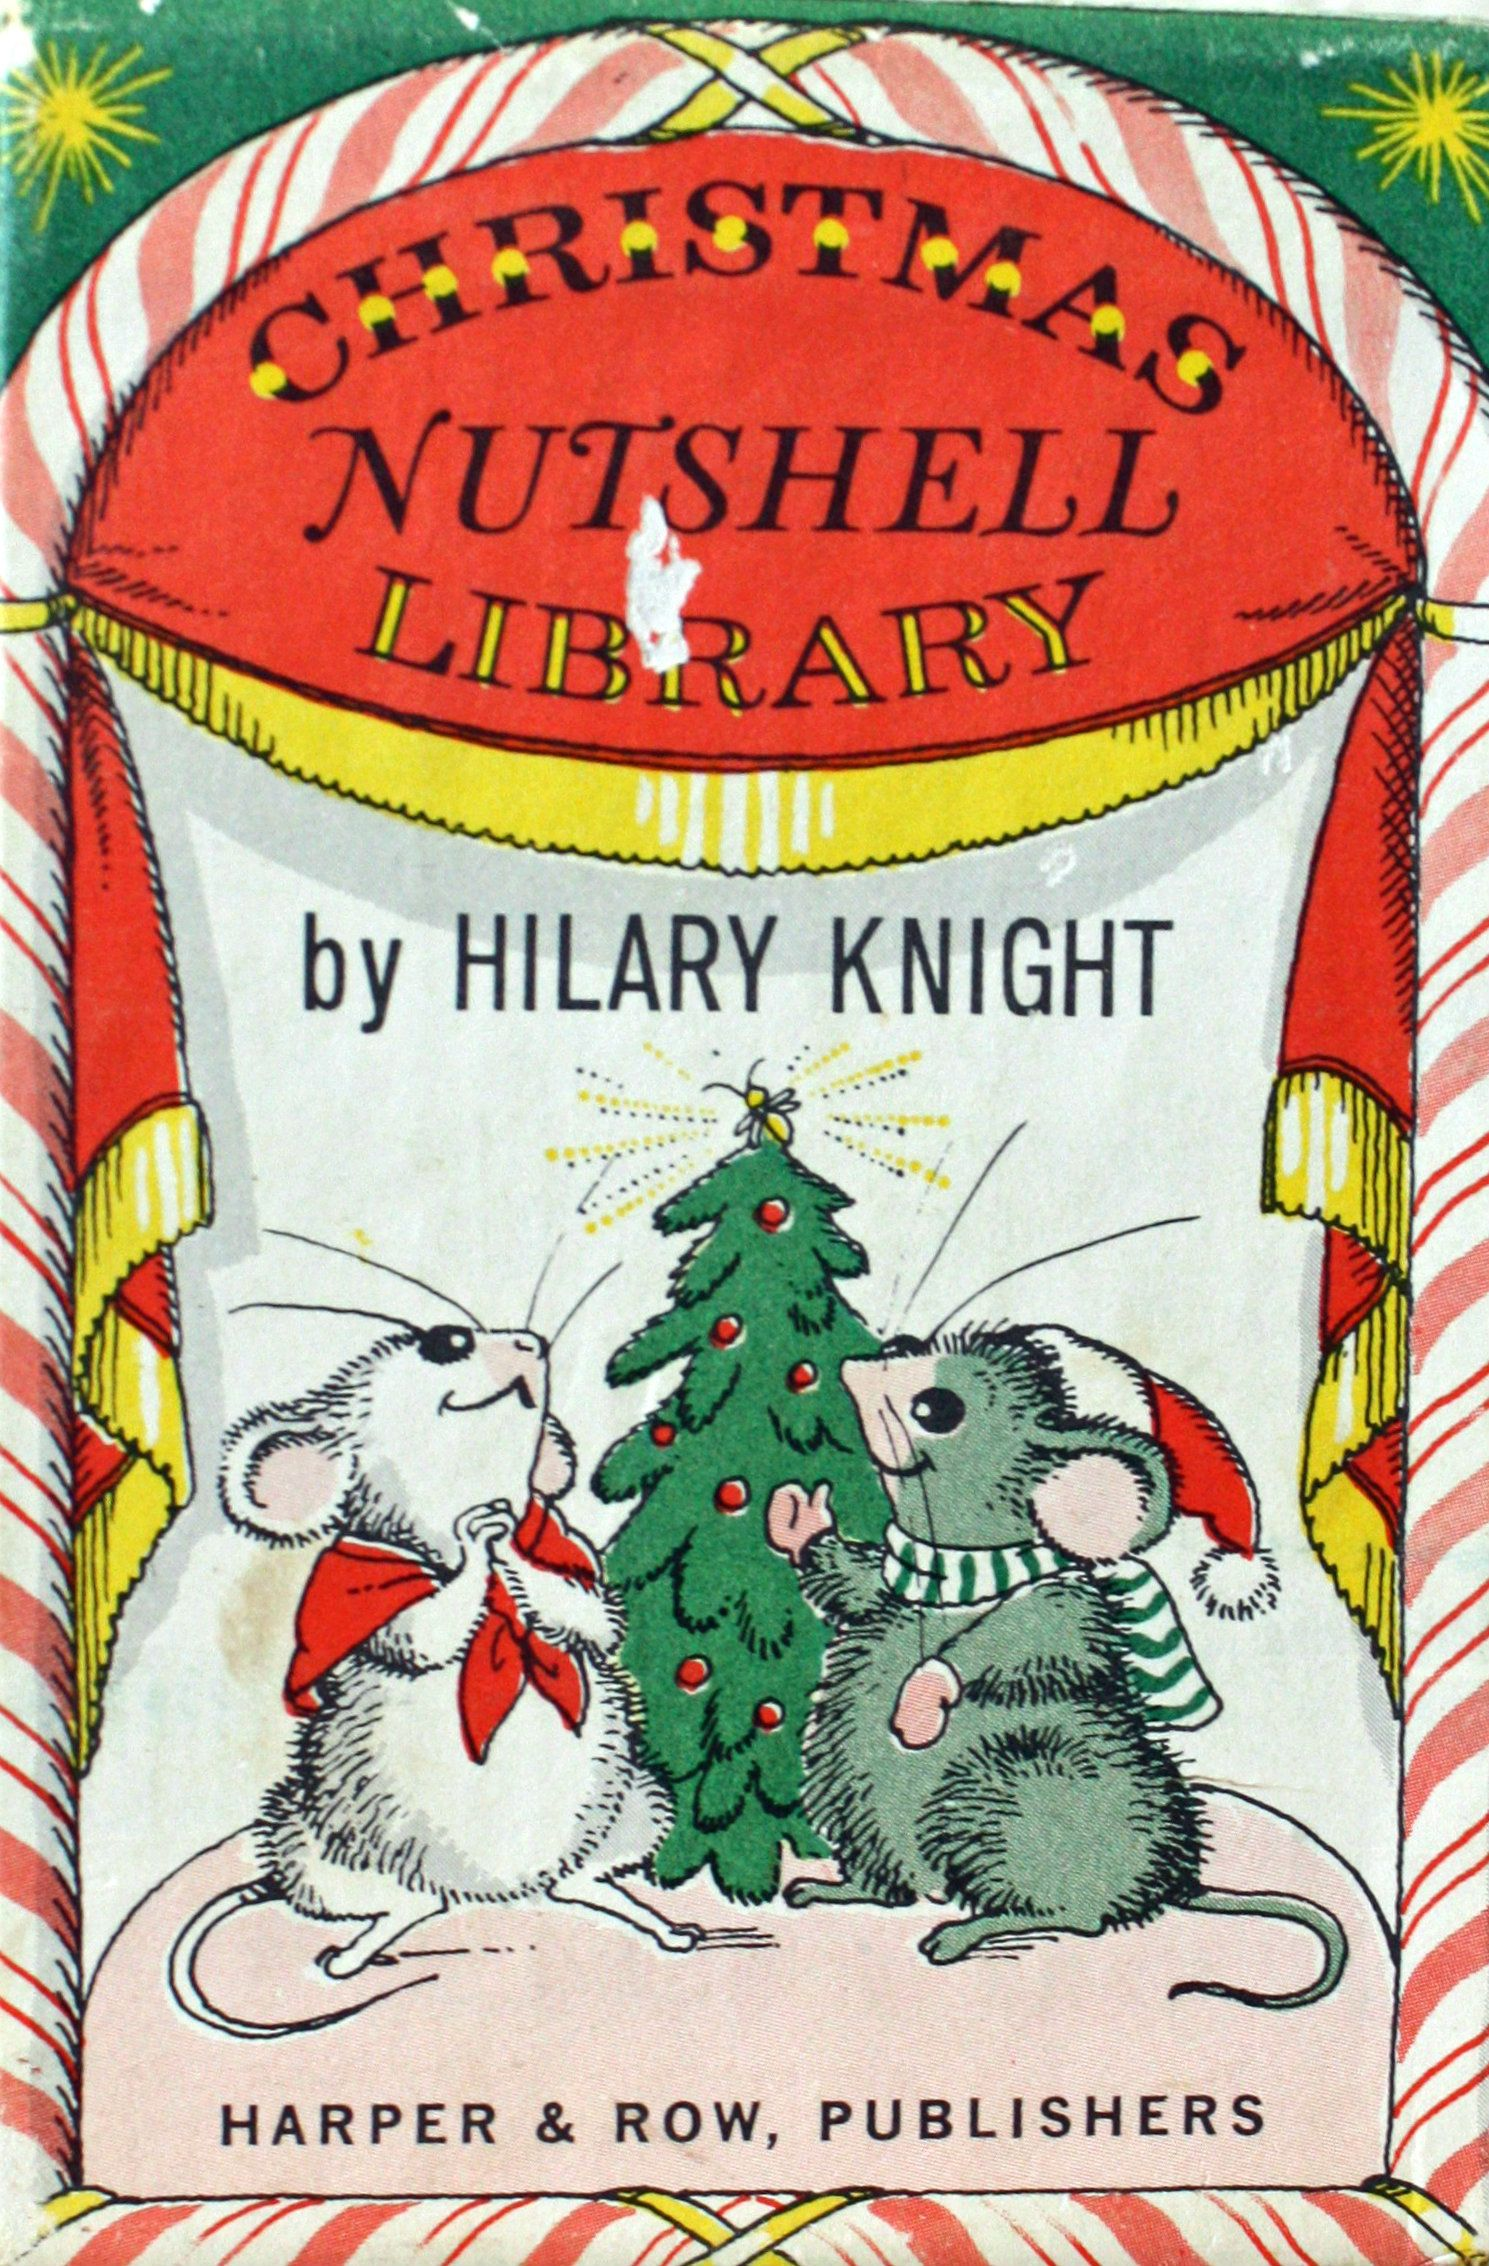 Christmas Nutshell Library by Hilary Knight